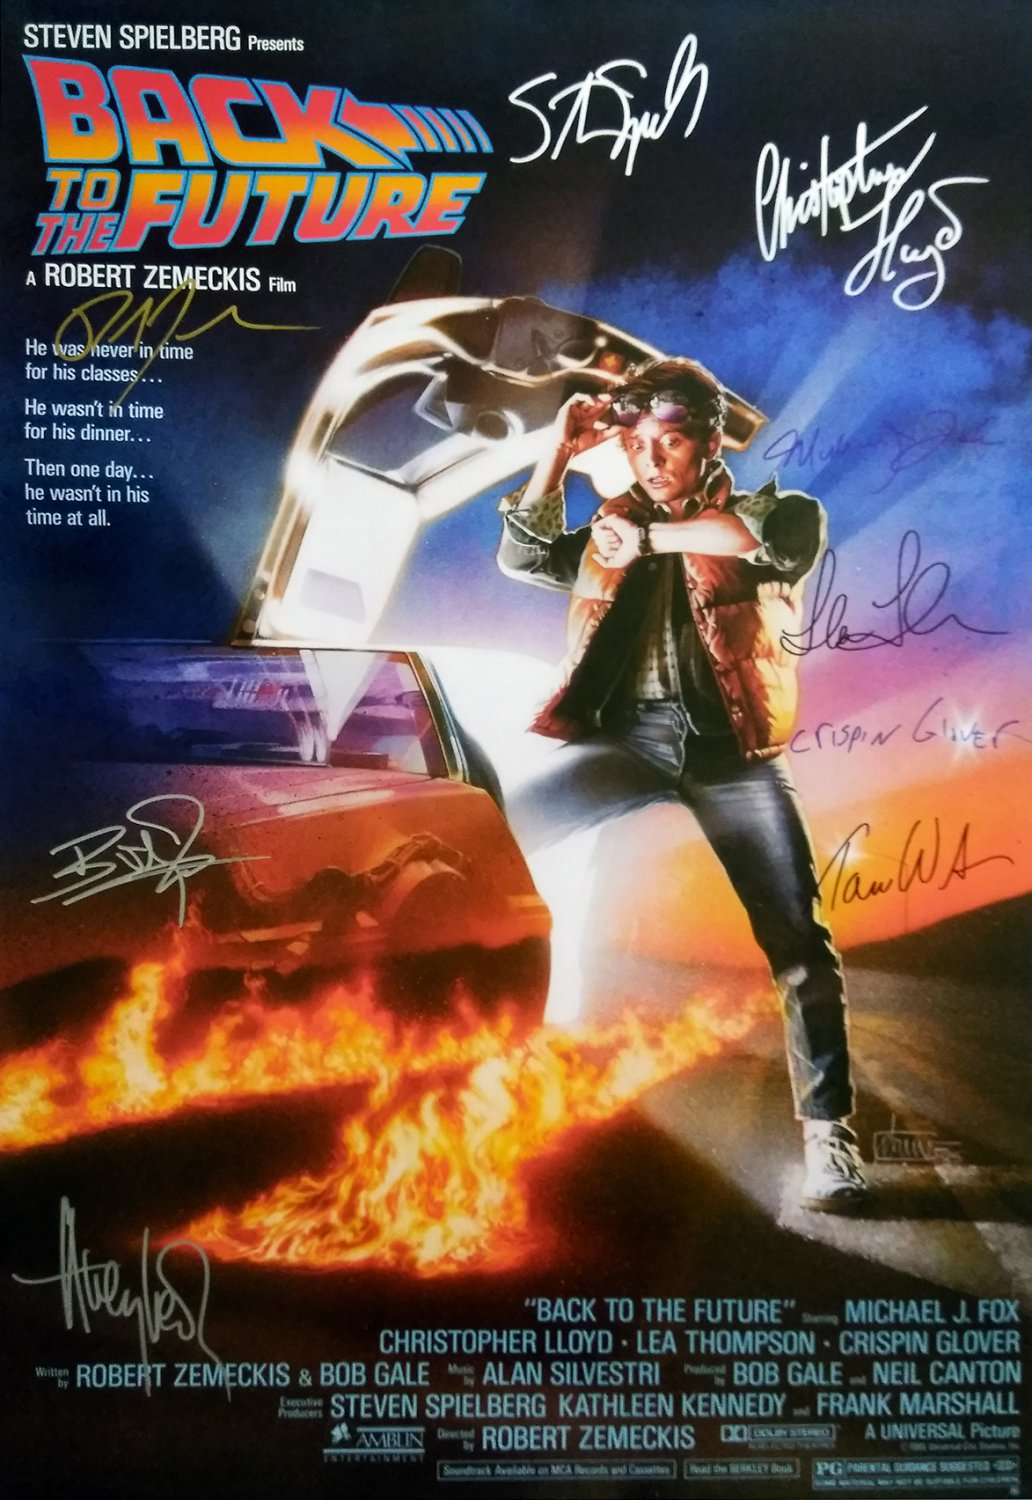 Signed BACK TO THE FUTURE Movie Poster by 9 members of the Cast